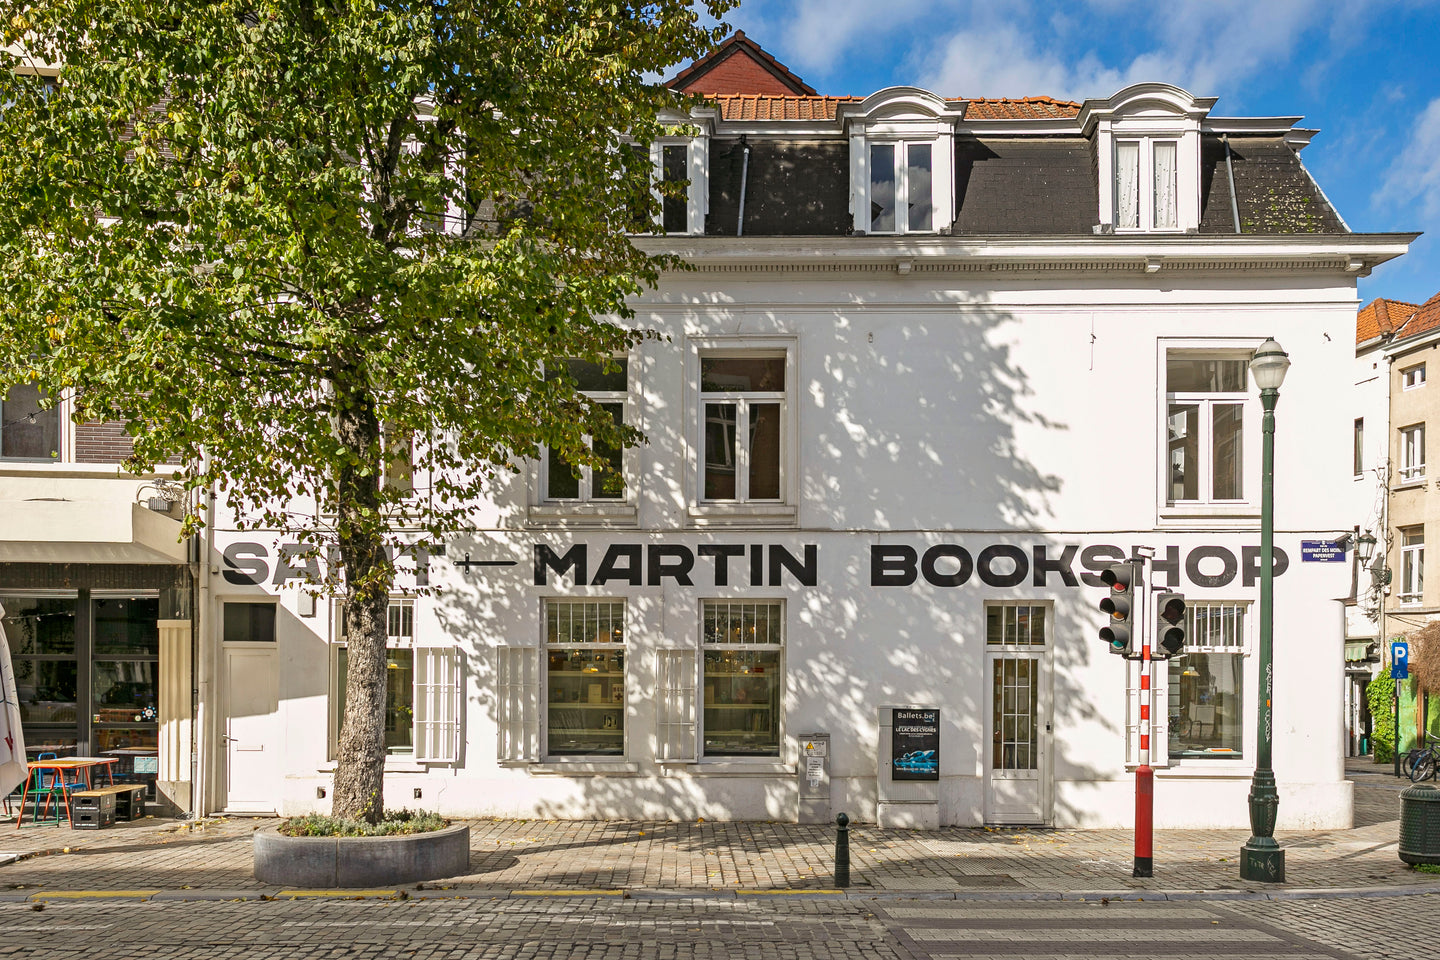 saint-martin bookshop brussels